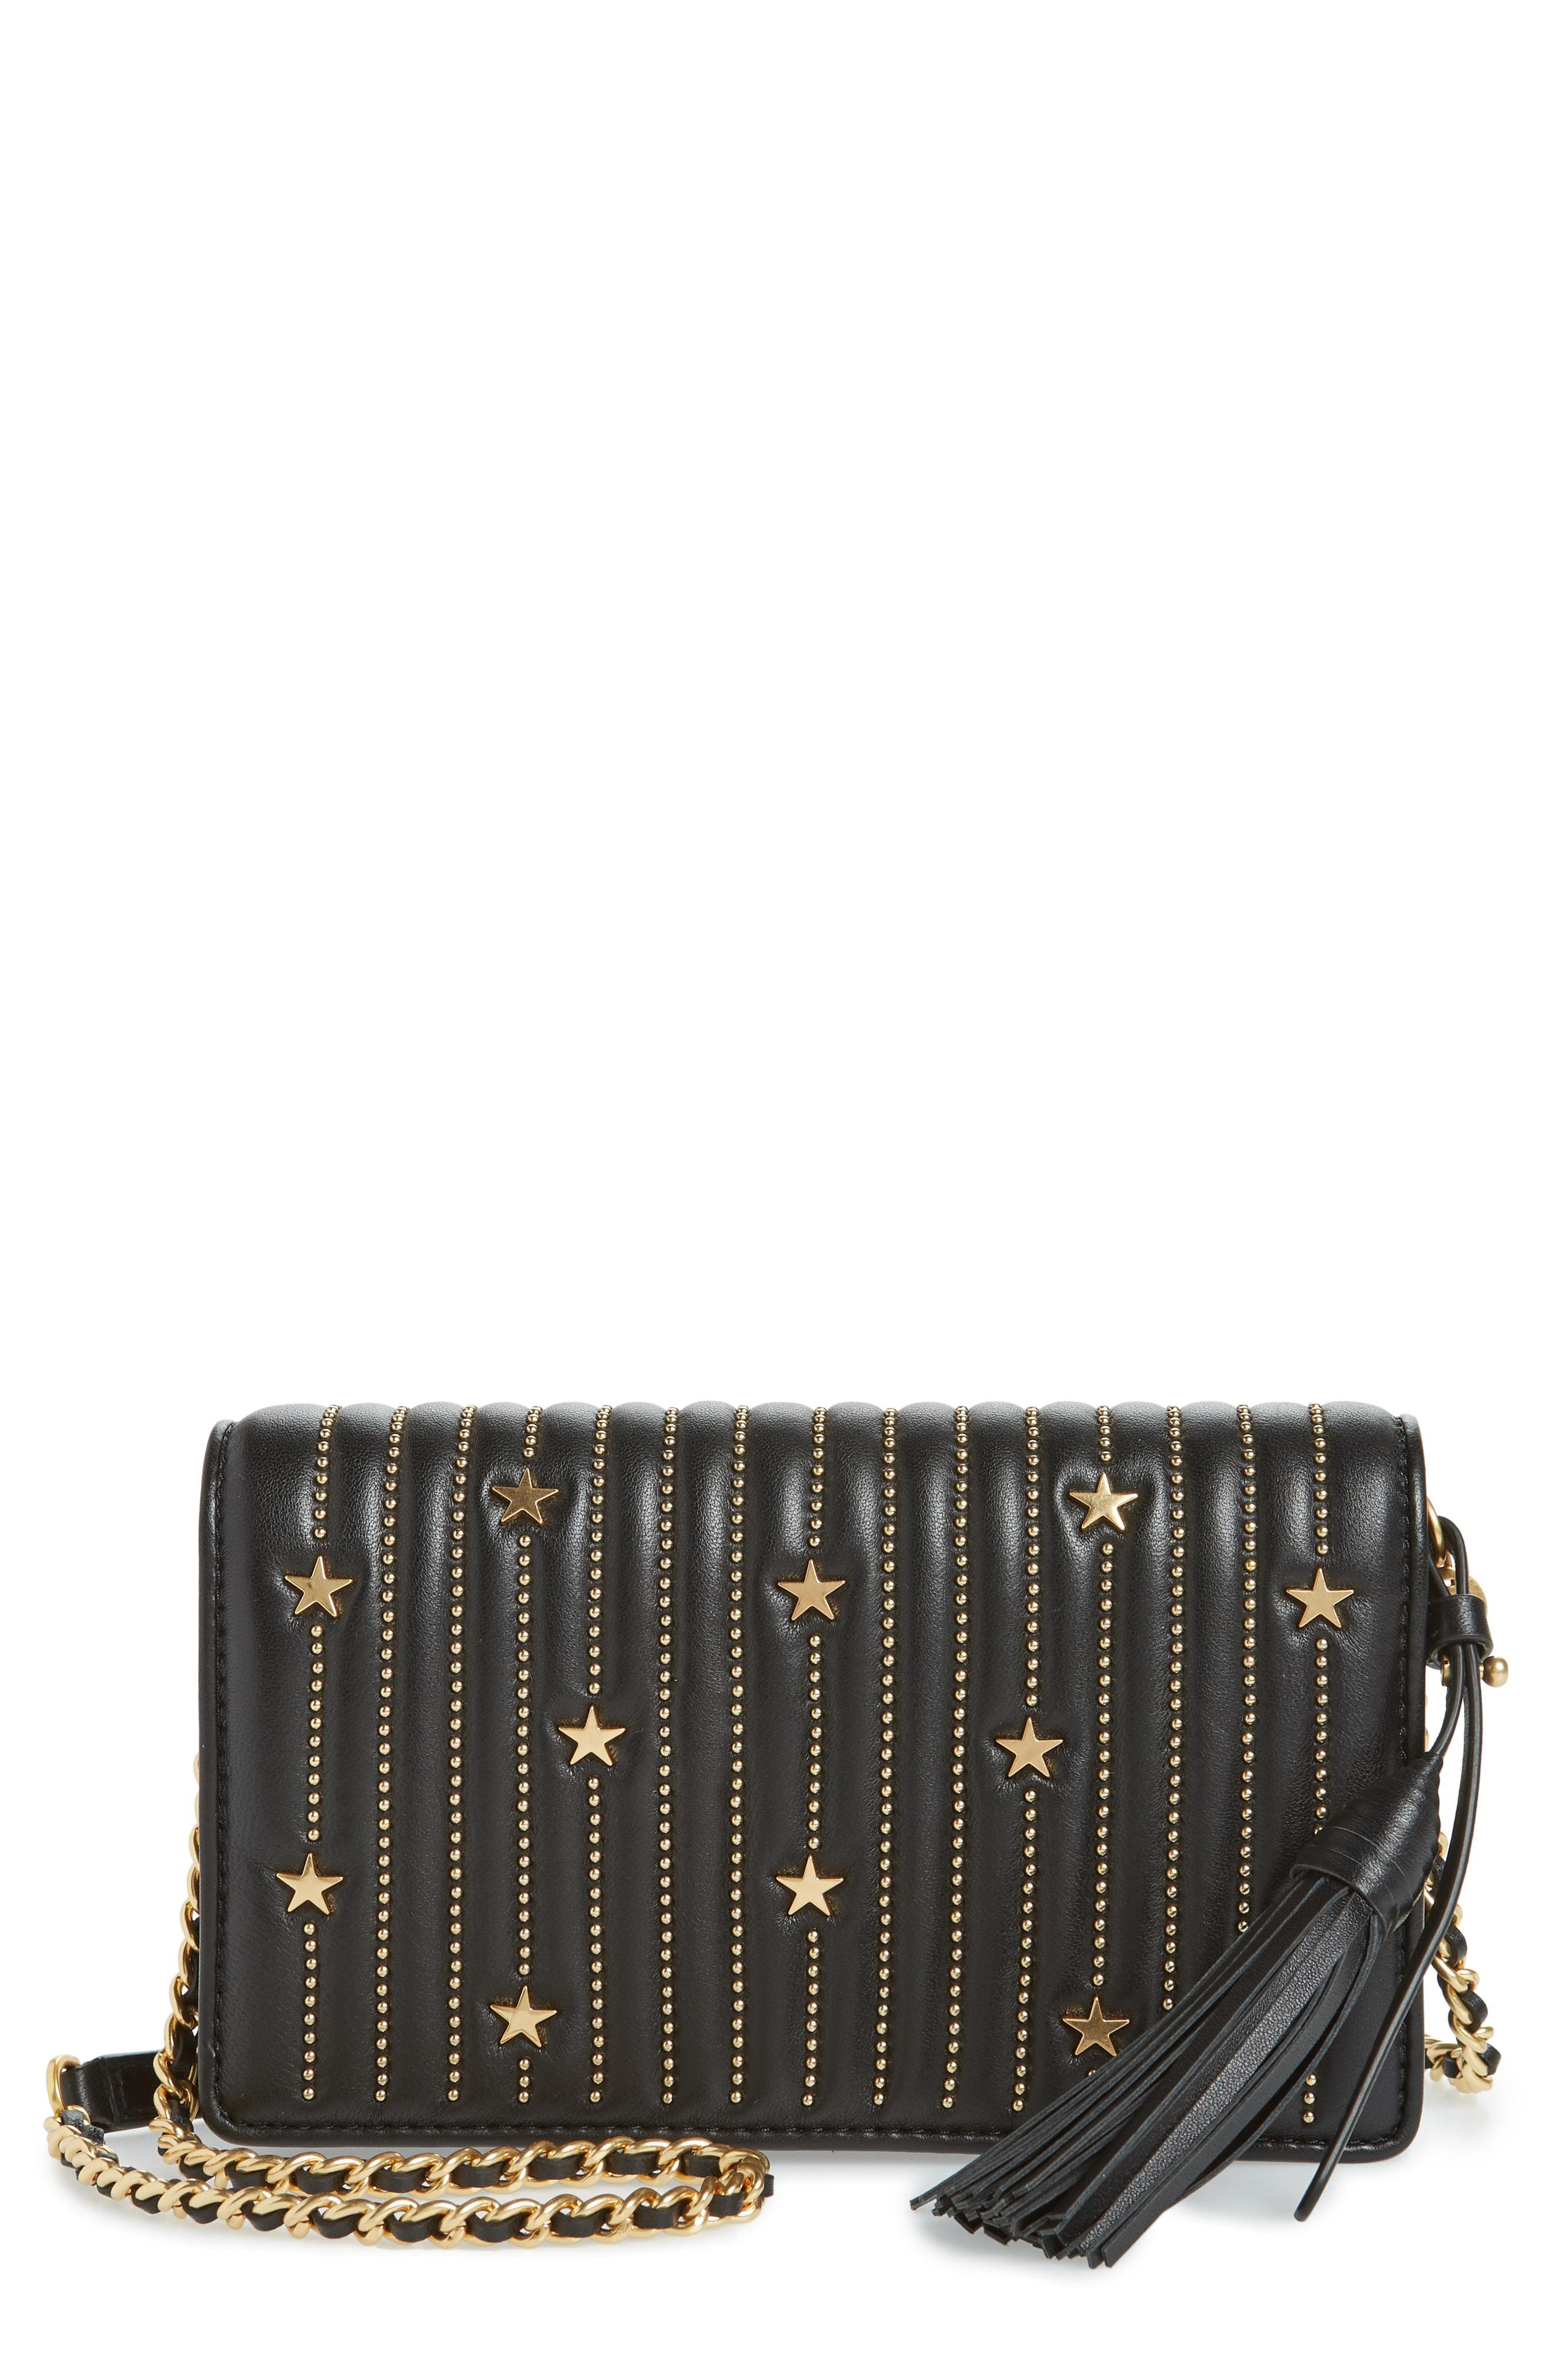 fbc786af8fc Lyst - Tory Burch Star Studded Leather Wallet On A Chain - in Black